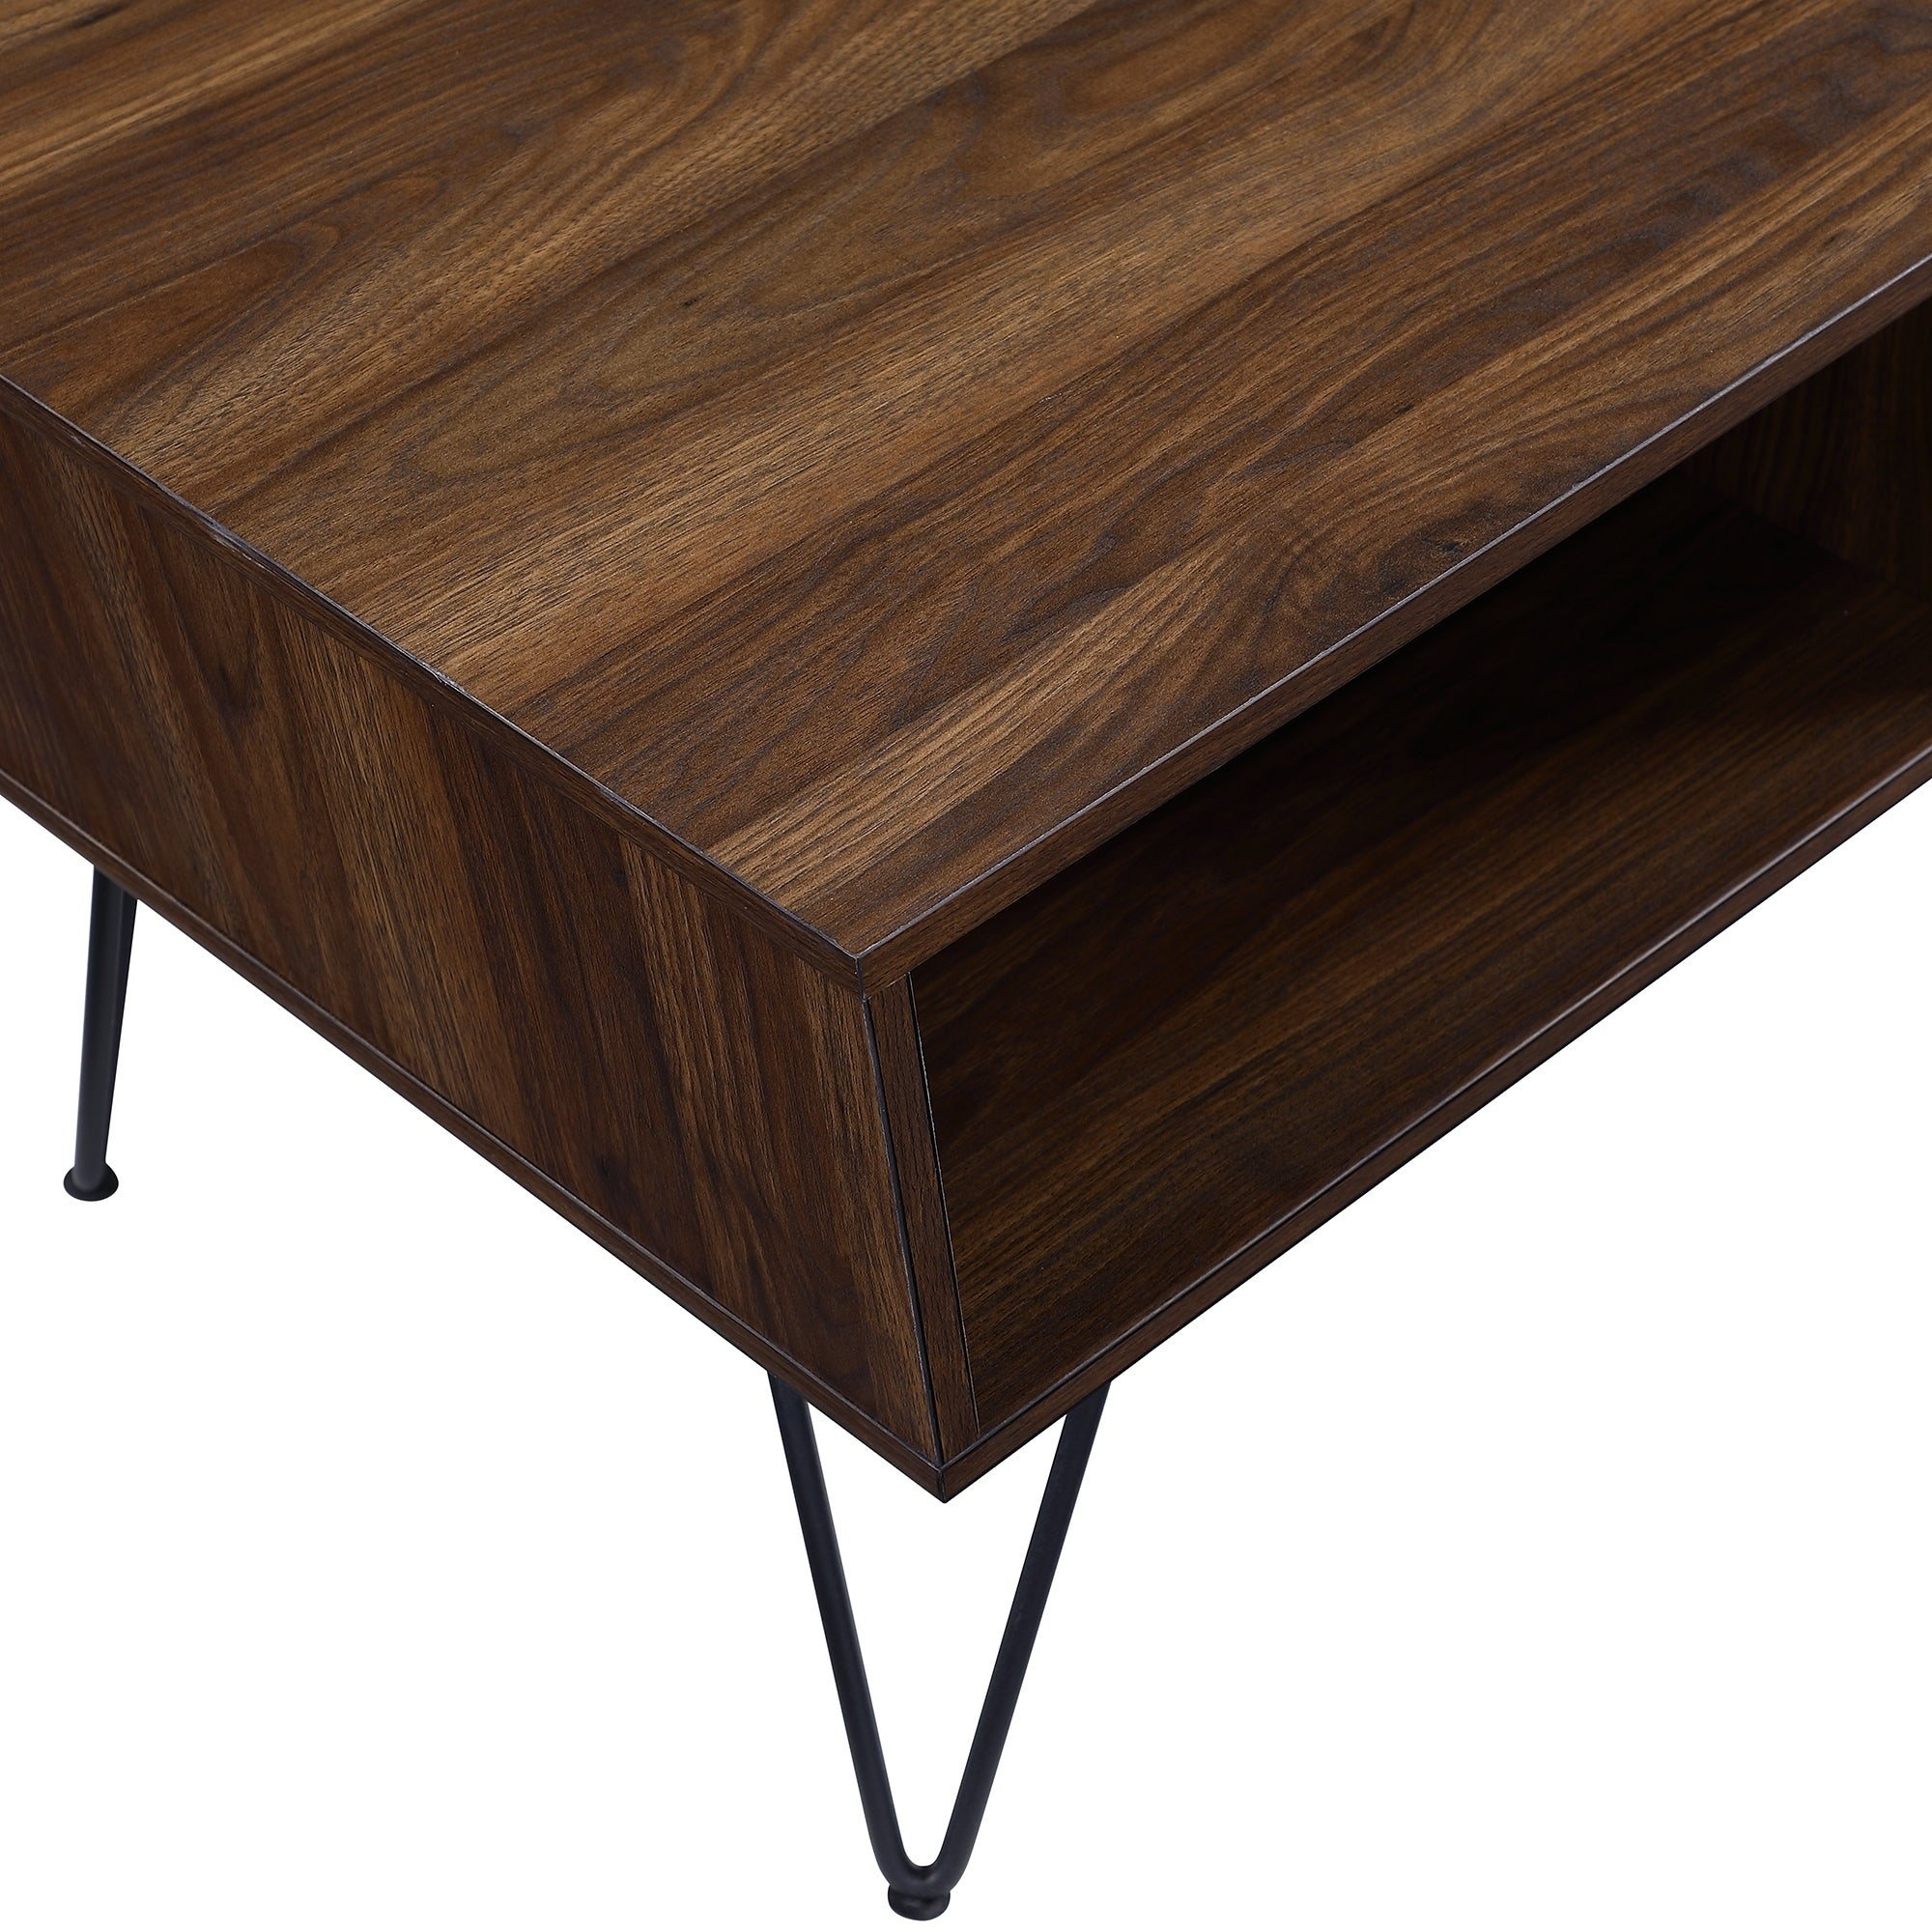 Coffee Table Angled Legs: Mid-Century Angled Coffee Table With Hairpin Legs